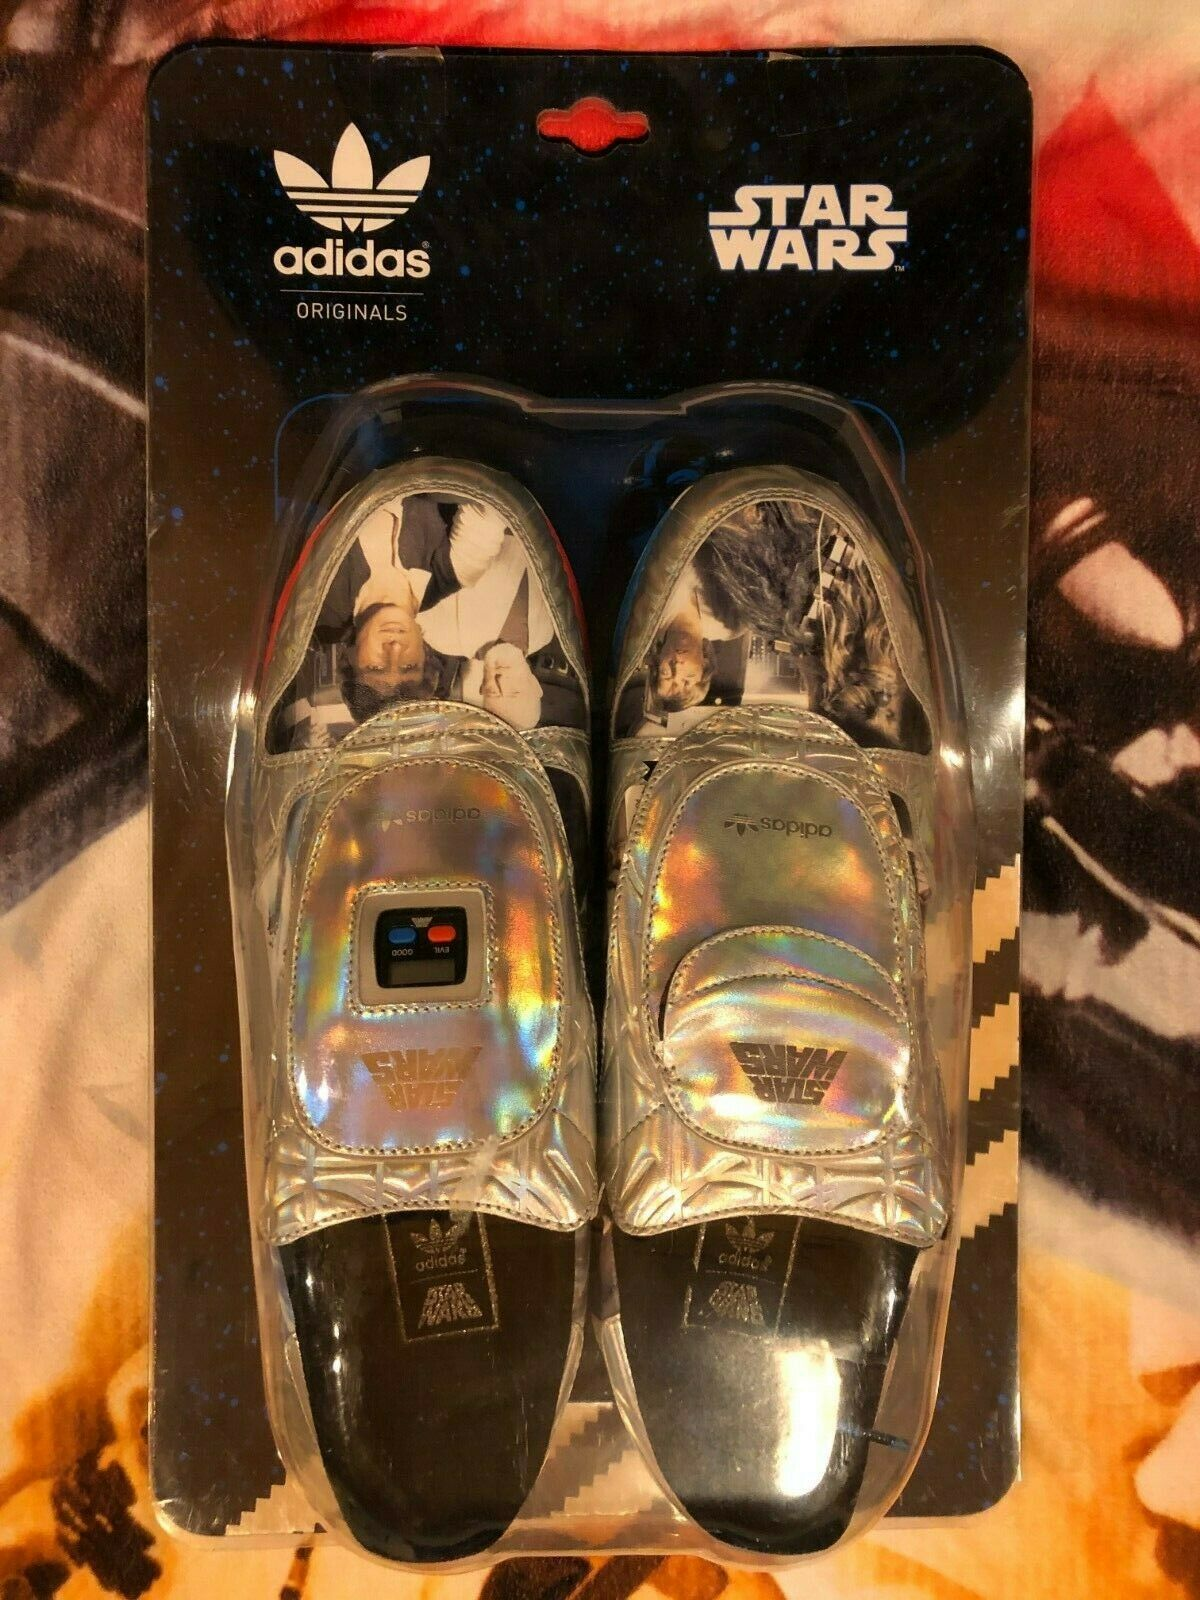 Star Wars Adidas Originals shoes Memorable Moments Micropacers Size 10.5